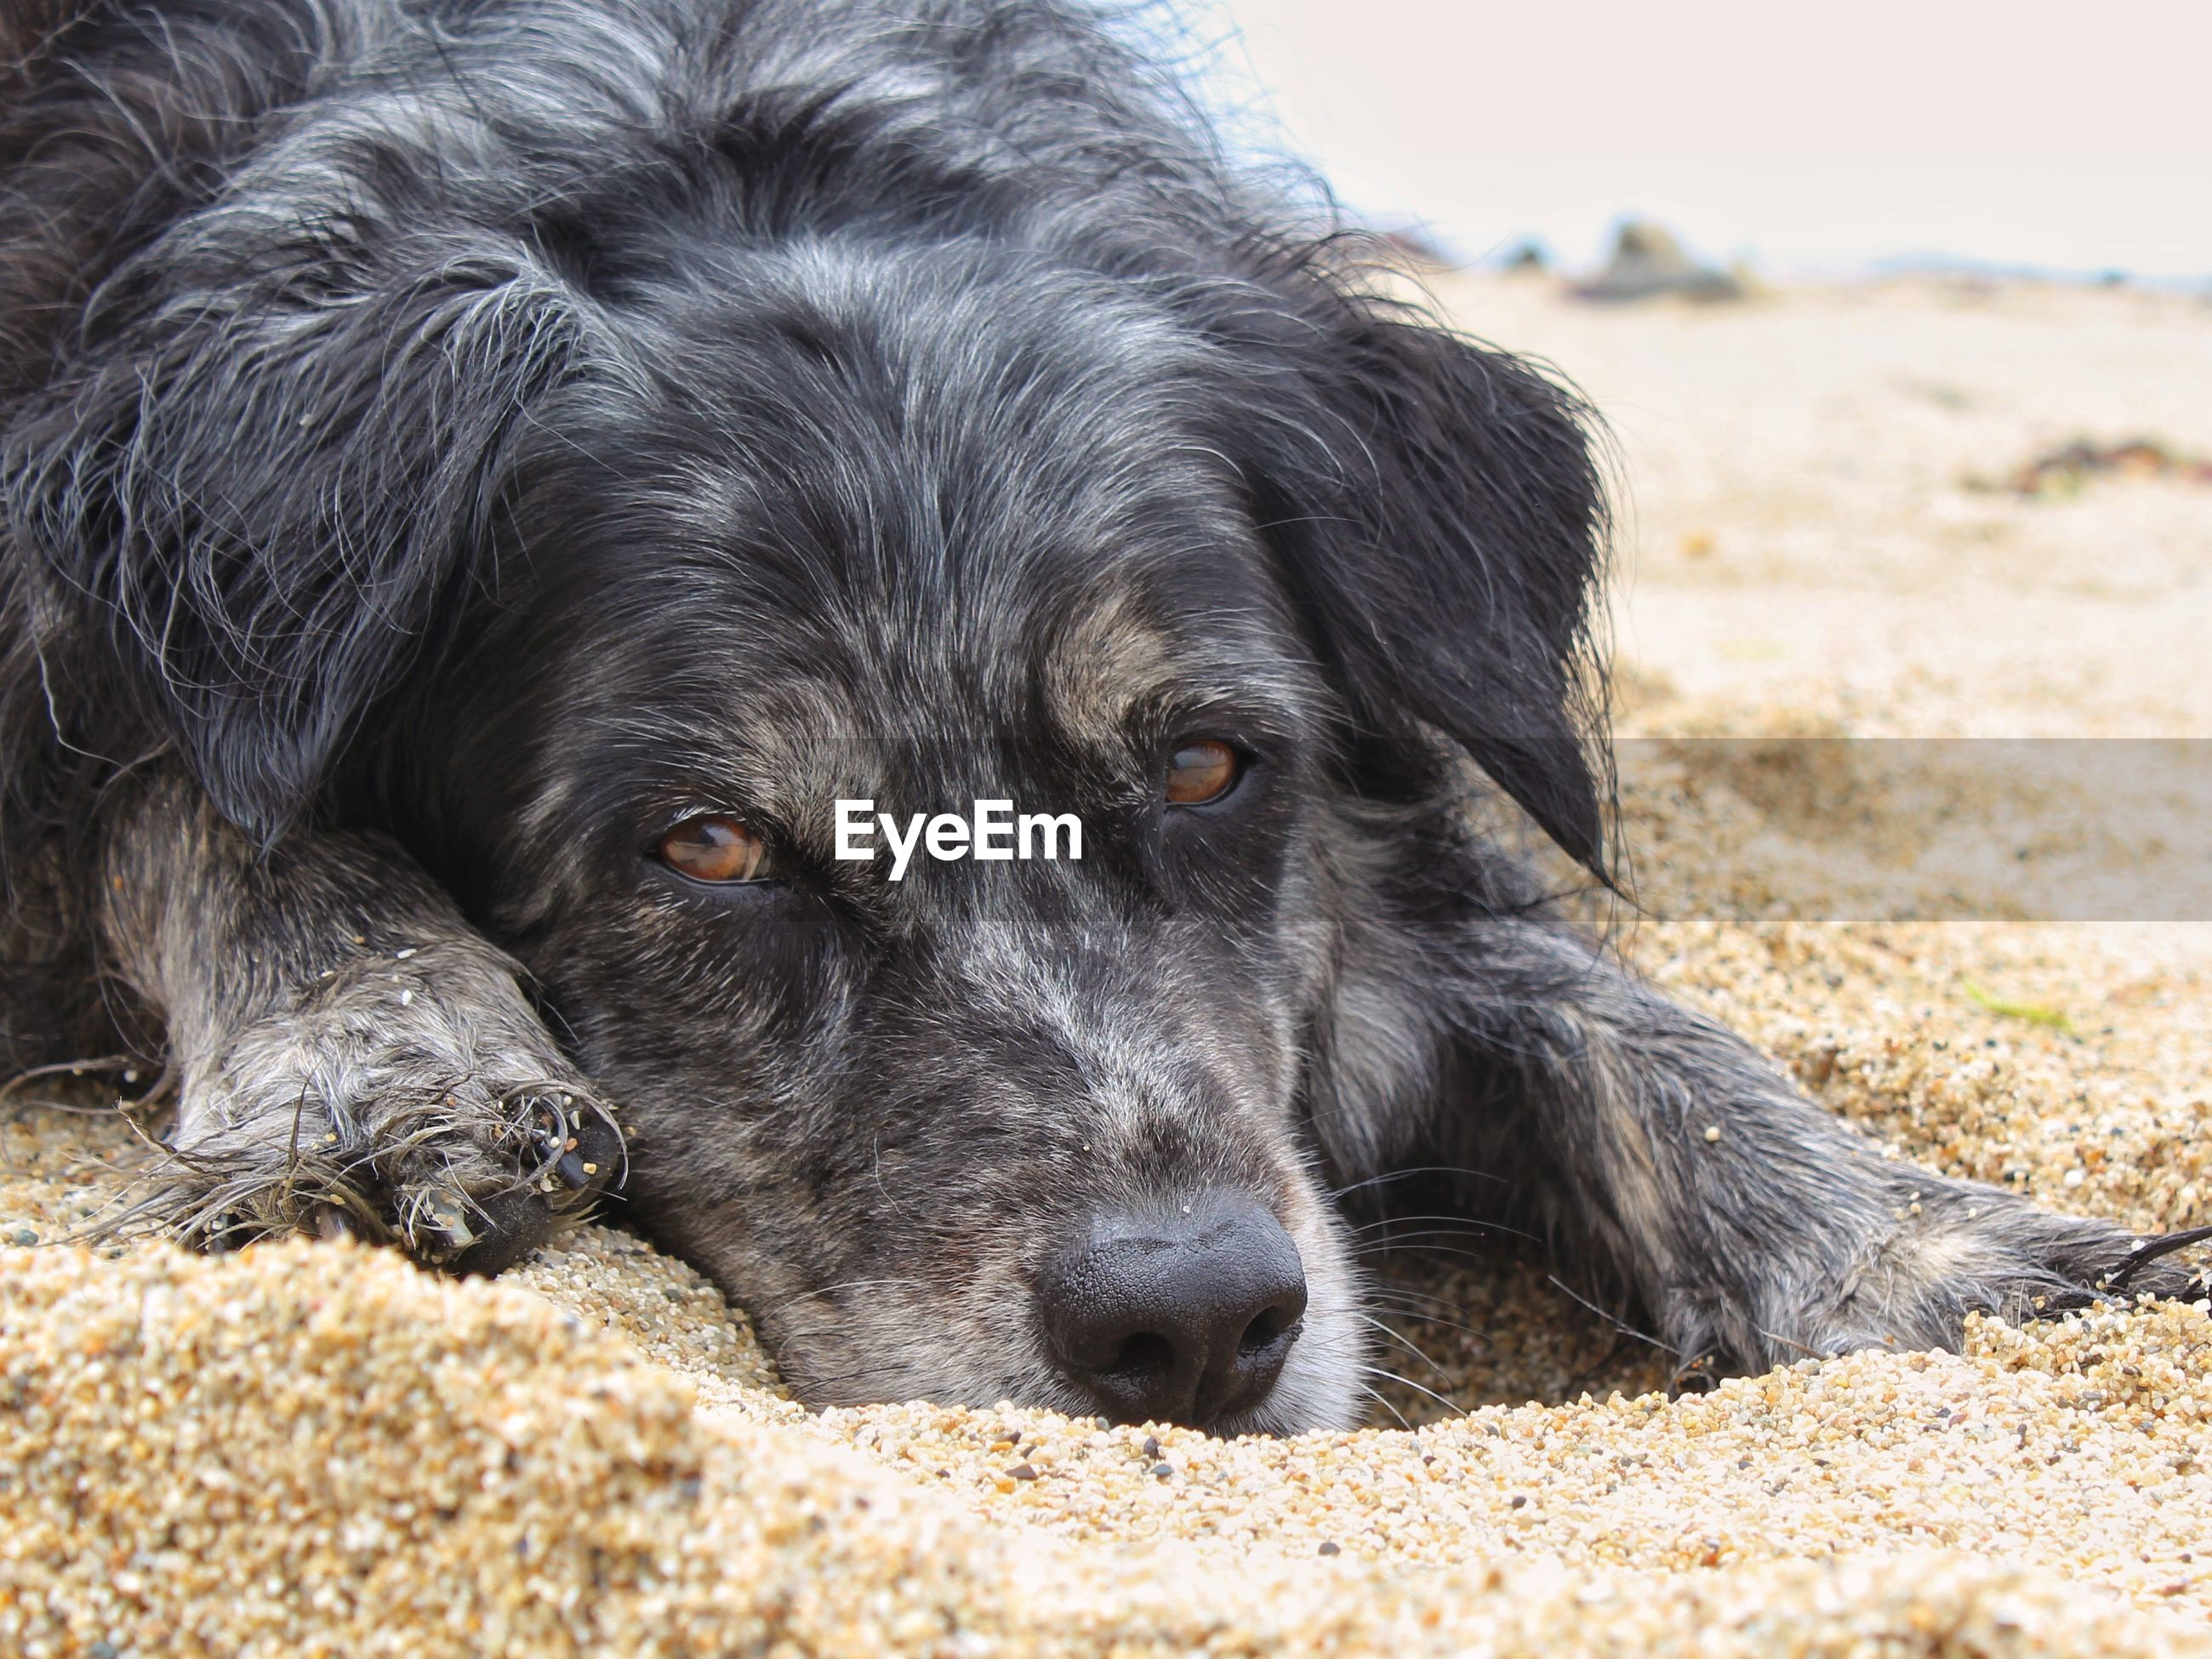 CLOSE-UP PORTRAIT OF A DOG LYING ON SAND